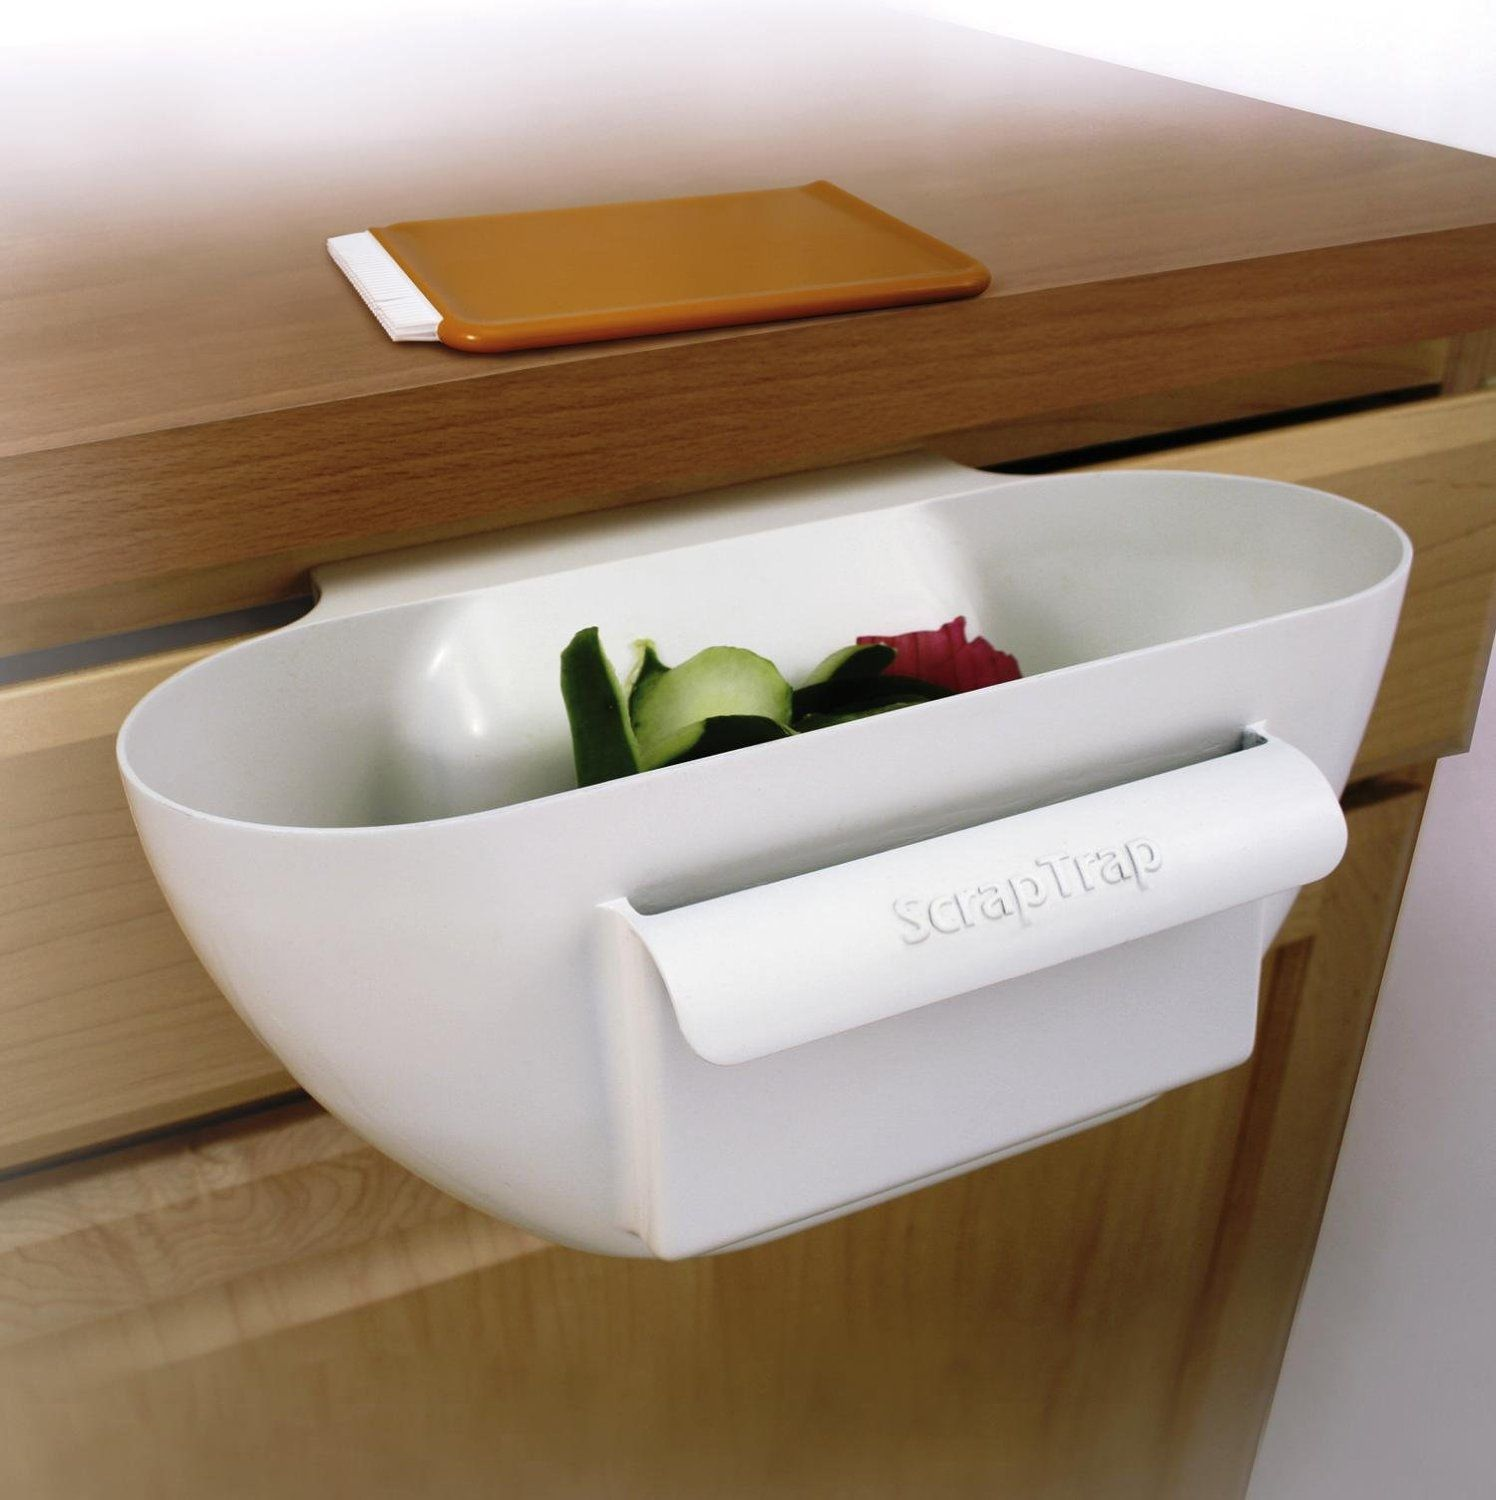 Küchendesign 2018 einfach want close inside drawer to scrape scraps into while chopping